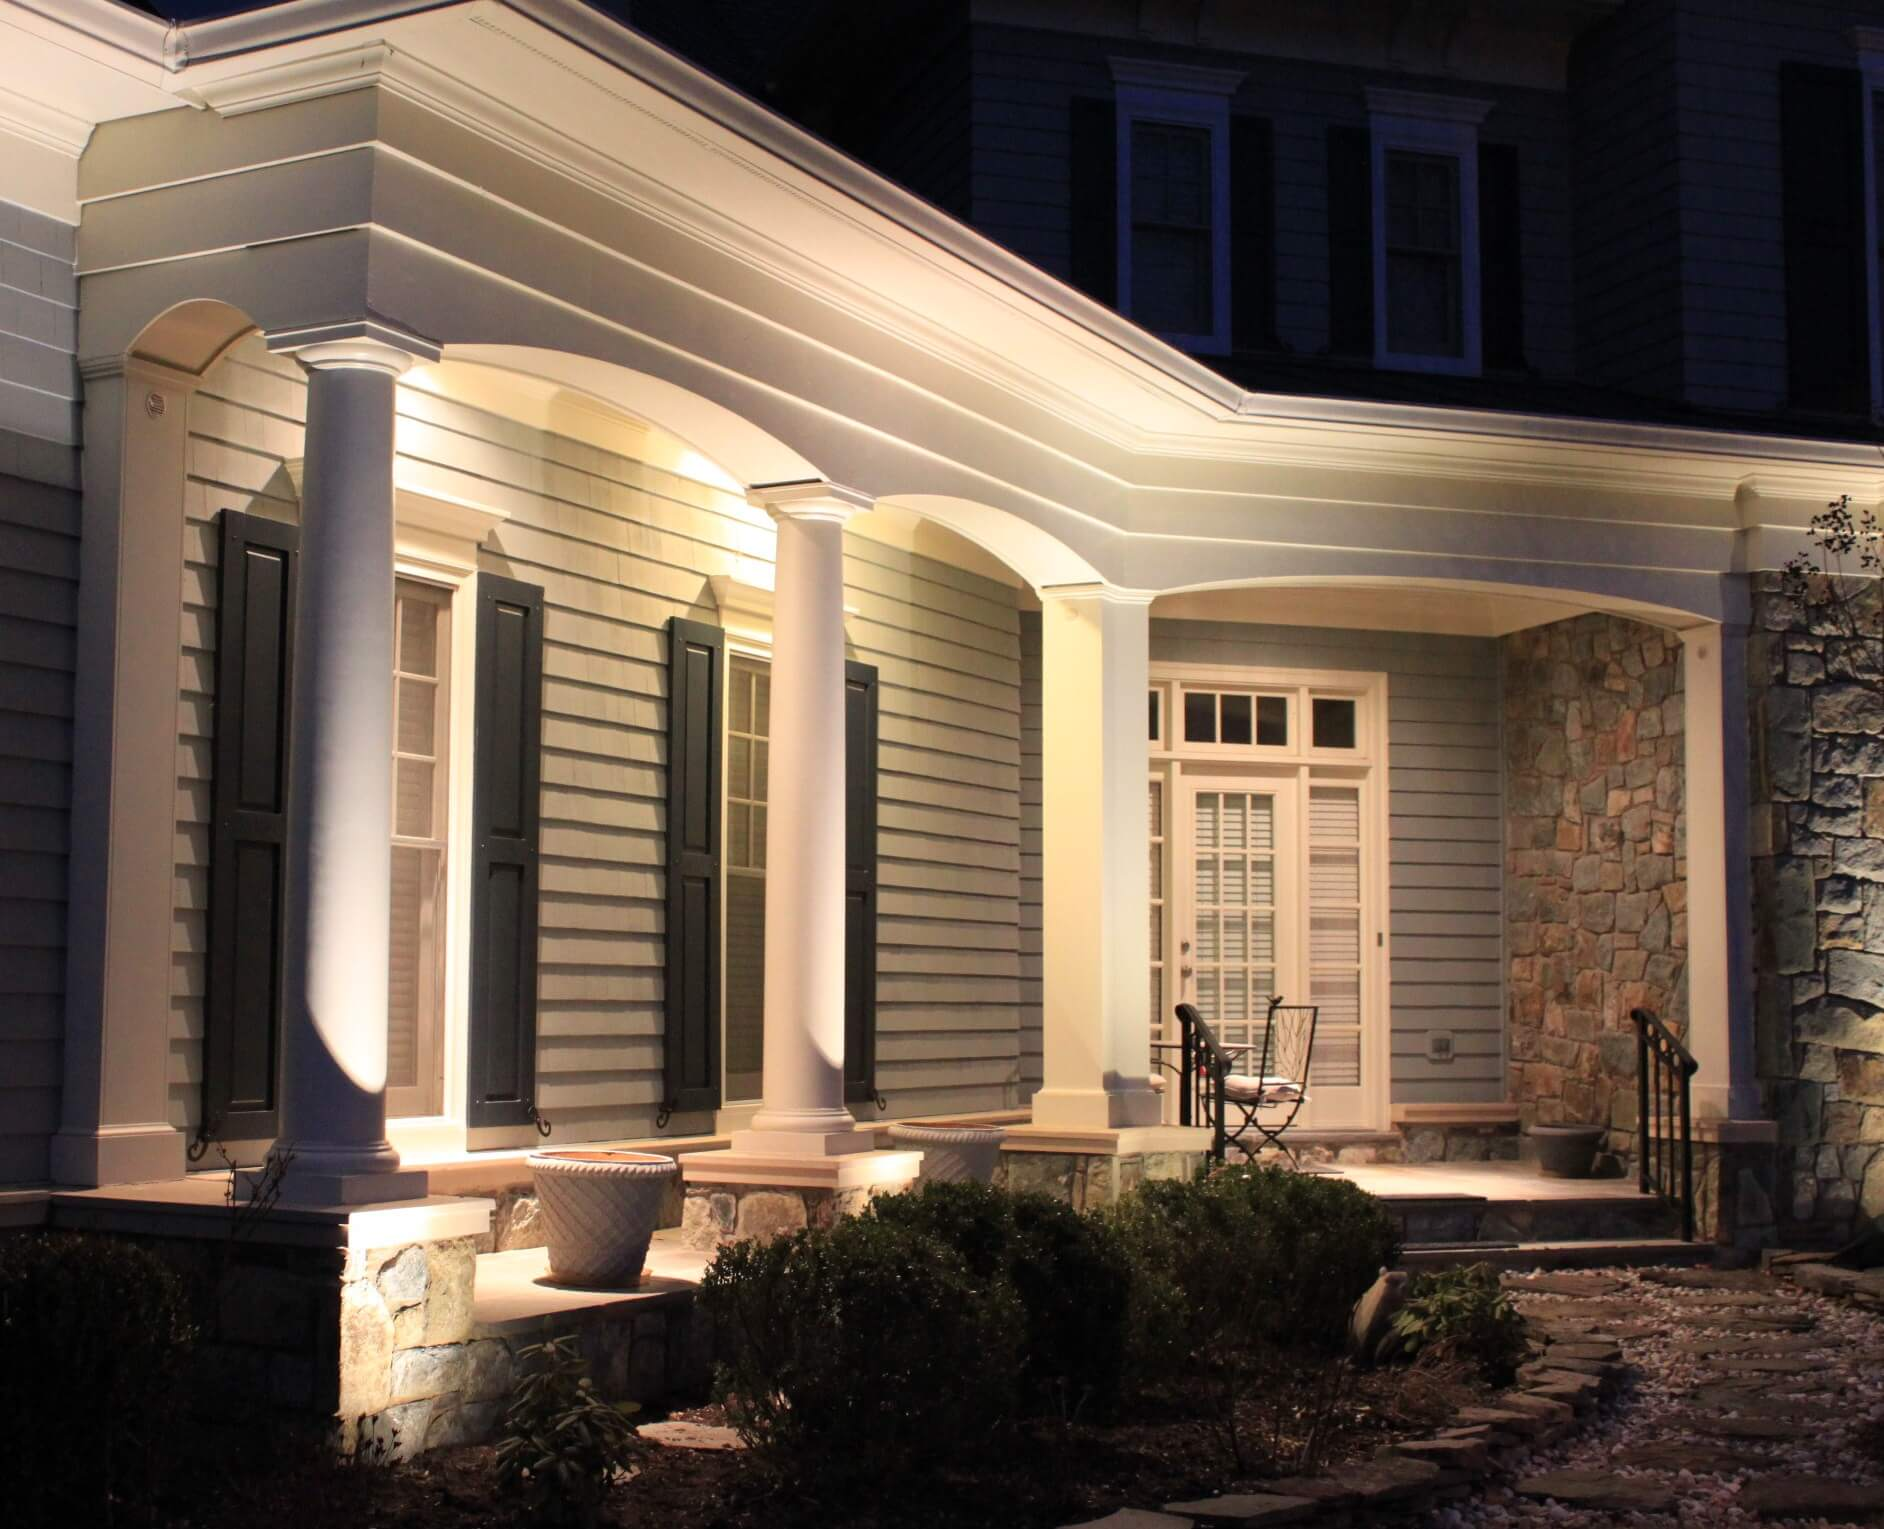 Commercial Outdoor Lighting & Commercial Outdoor Lighting | Outdoor Lighting Expressions azcodes.com